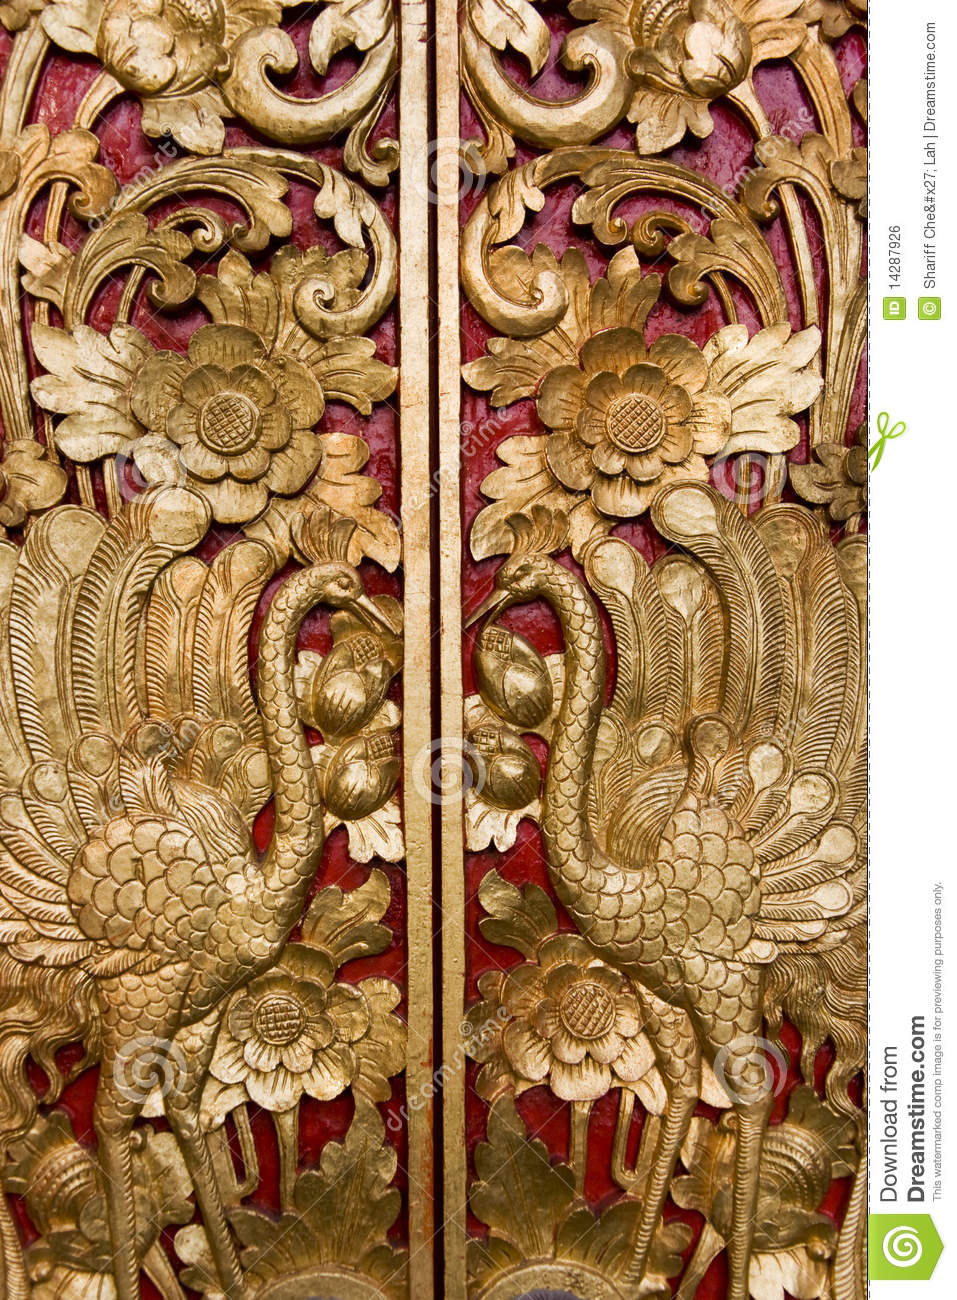 Door carving at pura masceti bali indonesia royalty free for Wood carving doors hd images